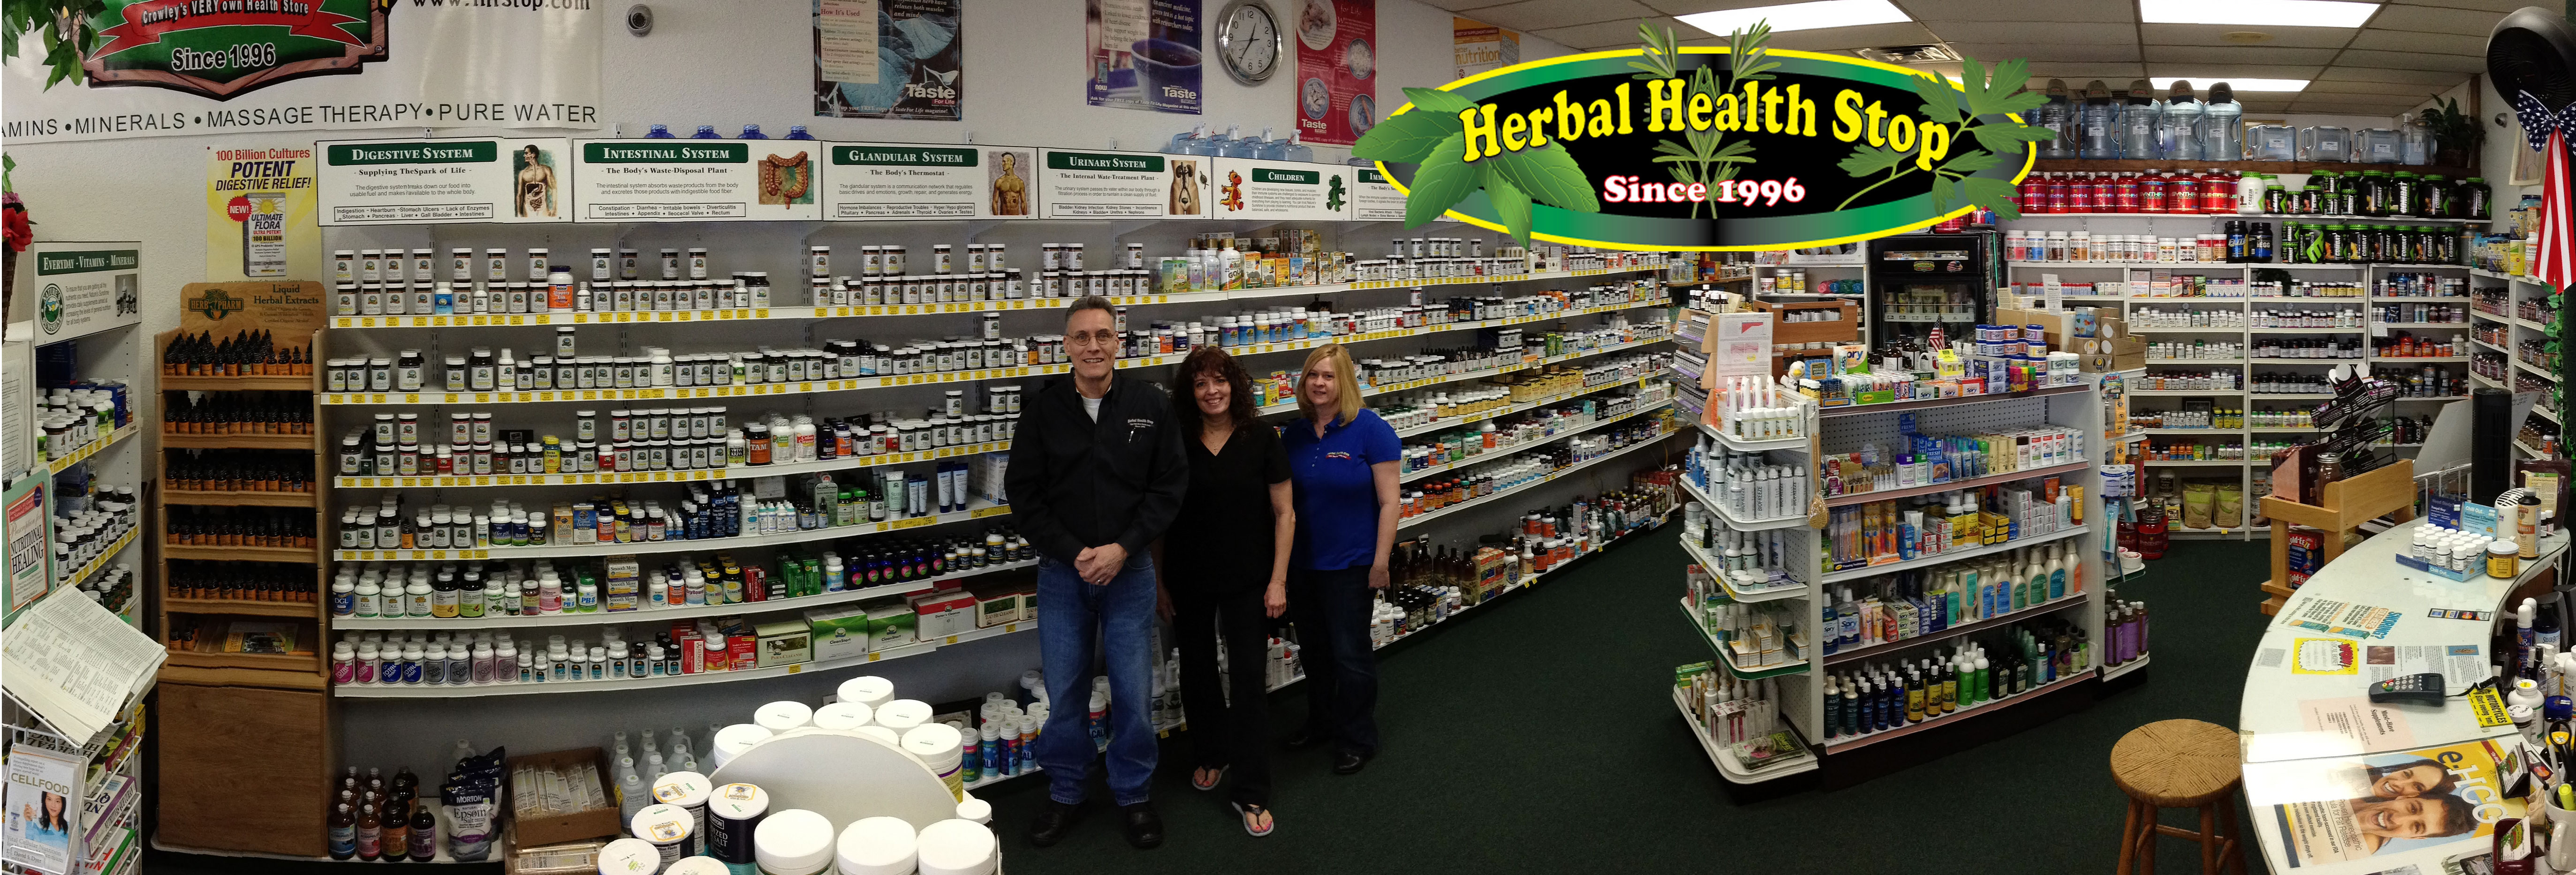 Be Pollen, Allergy Relief, Honey Health / www.hhstop.com